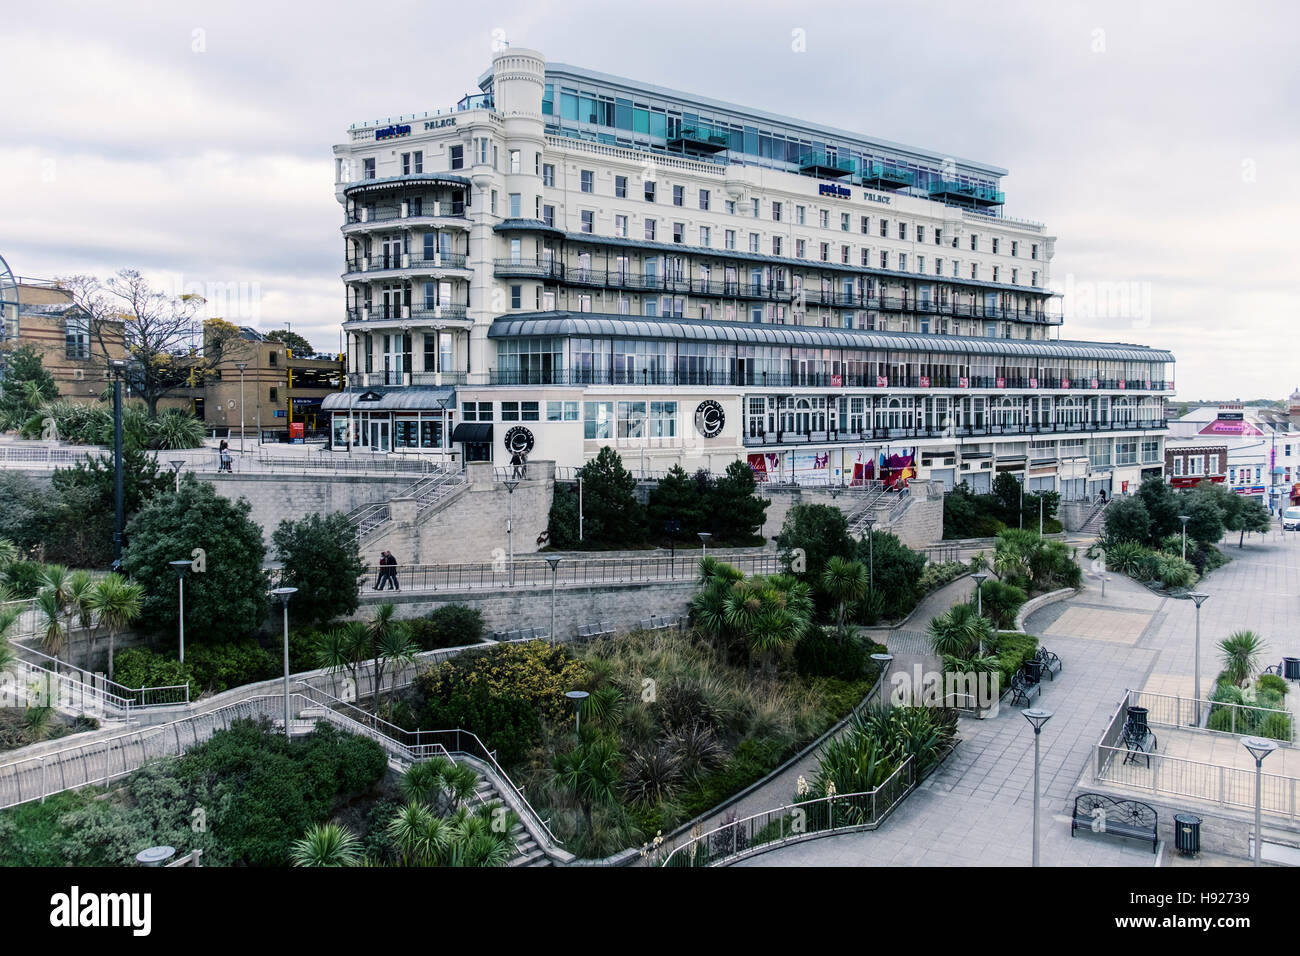 Grosvenor Casino & Park Inn Palace by Radisson, Hotel with accommodation and scenic views. Southend-on-sea, Essex,England Stock Photo